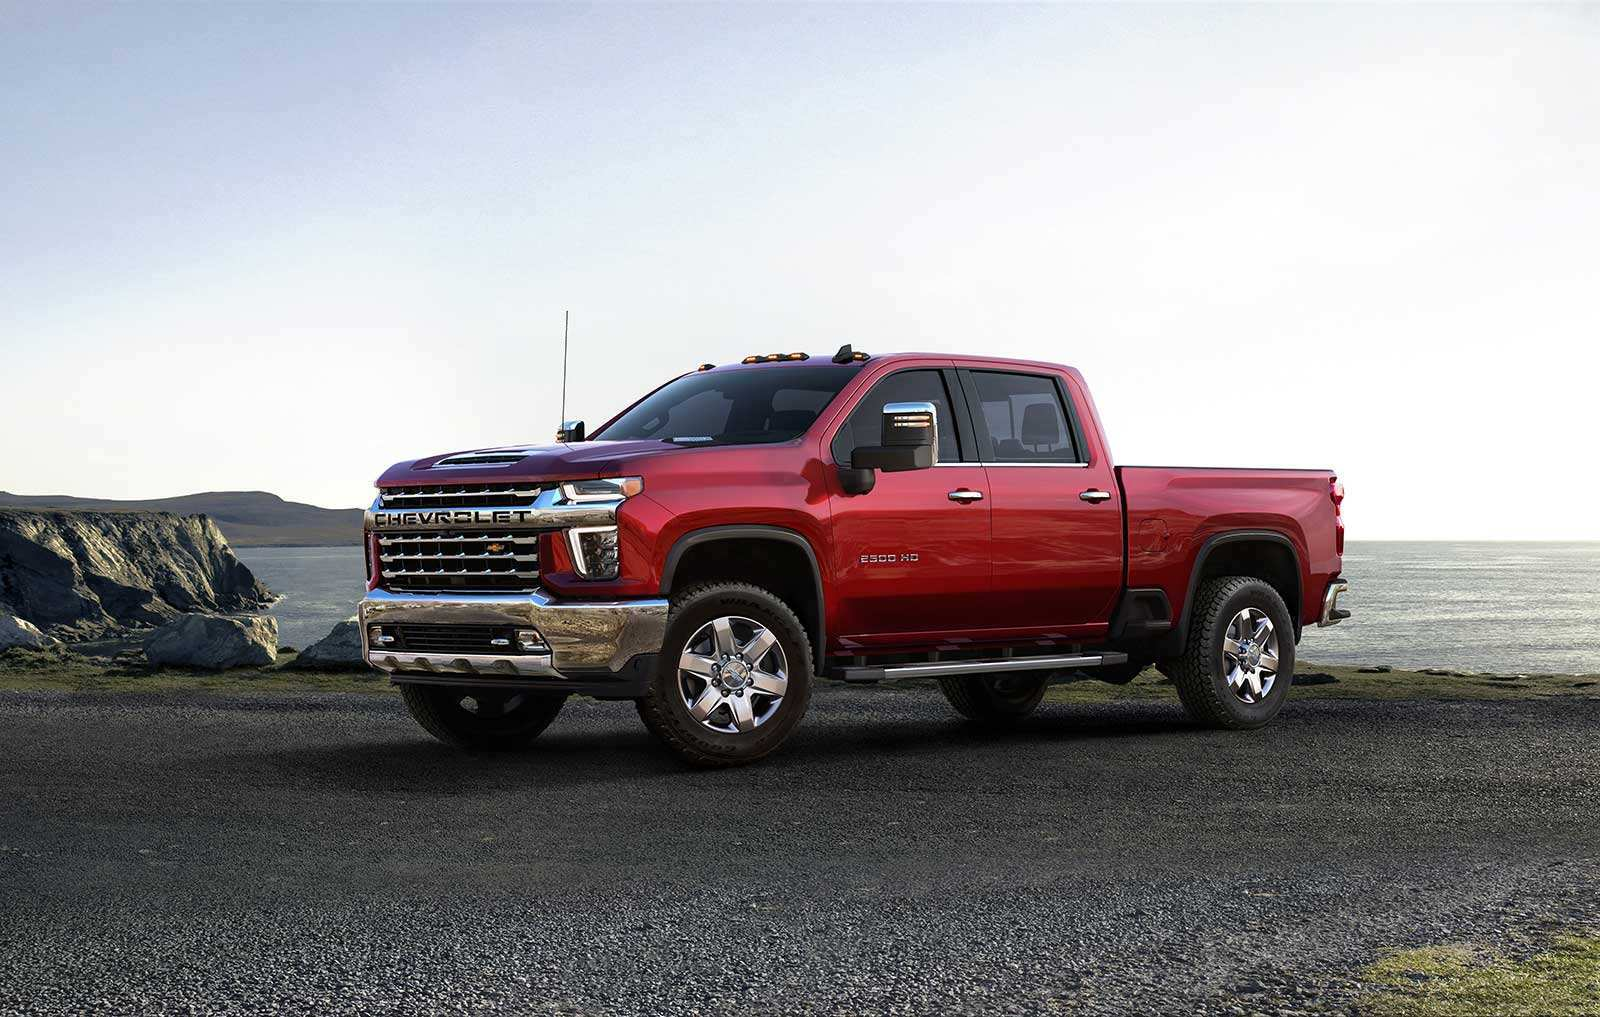 34 The Best 2020 Chevrolet Silverado 2500Hd High Country Pricing